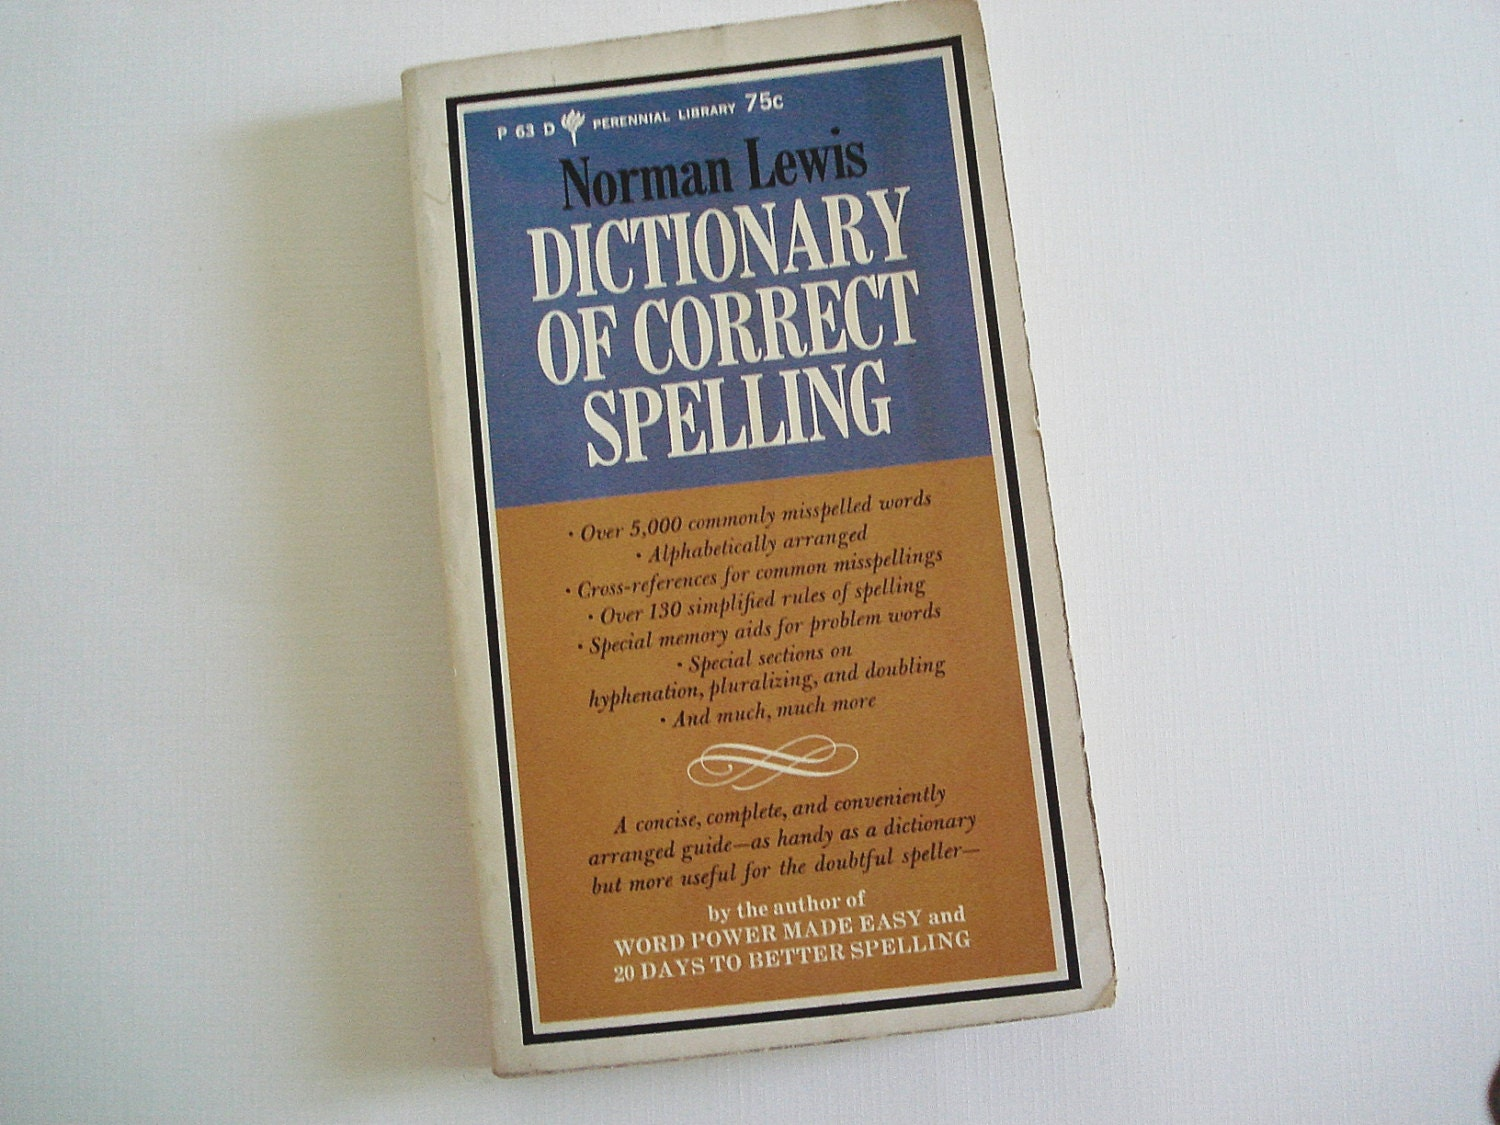 dictionary of correct spelling by norman lewis pdf